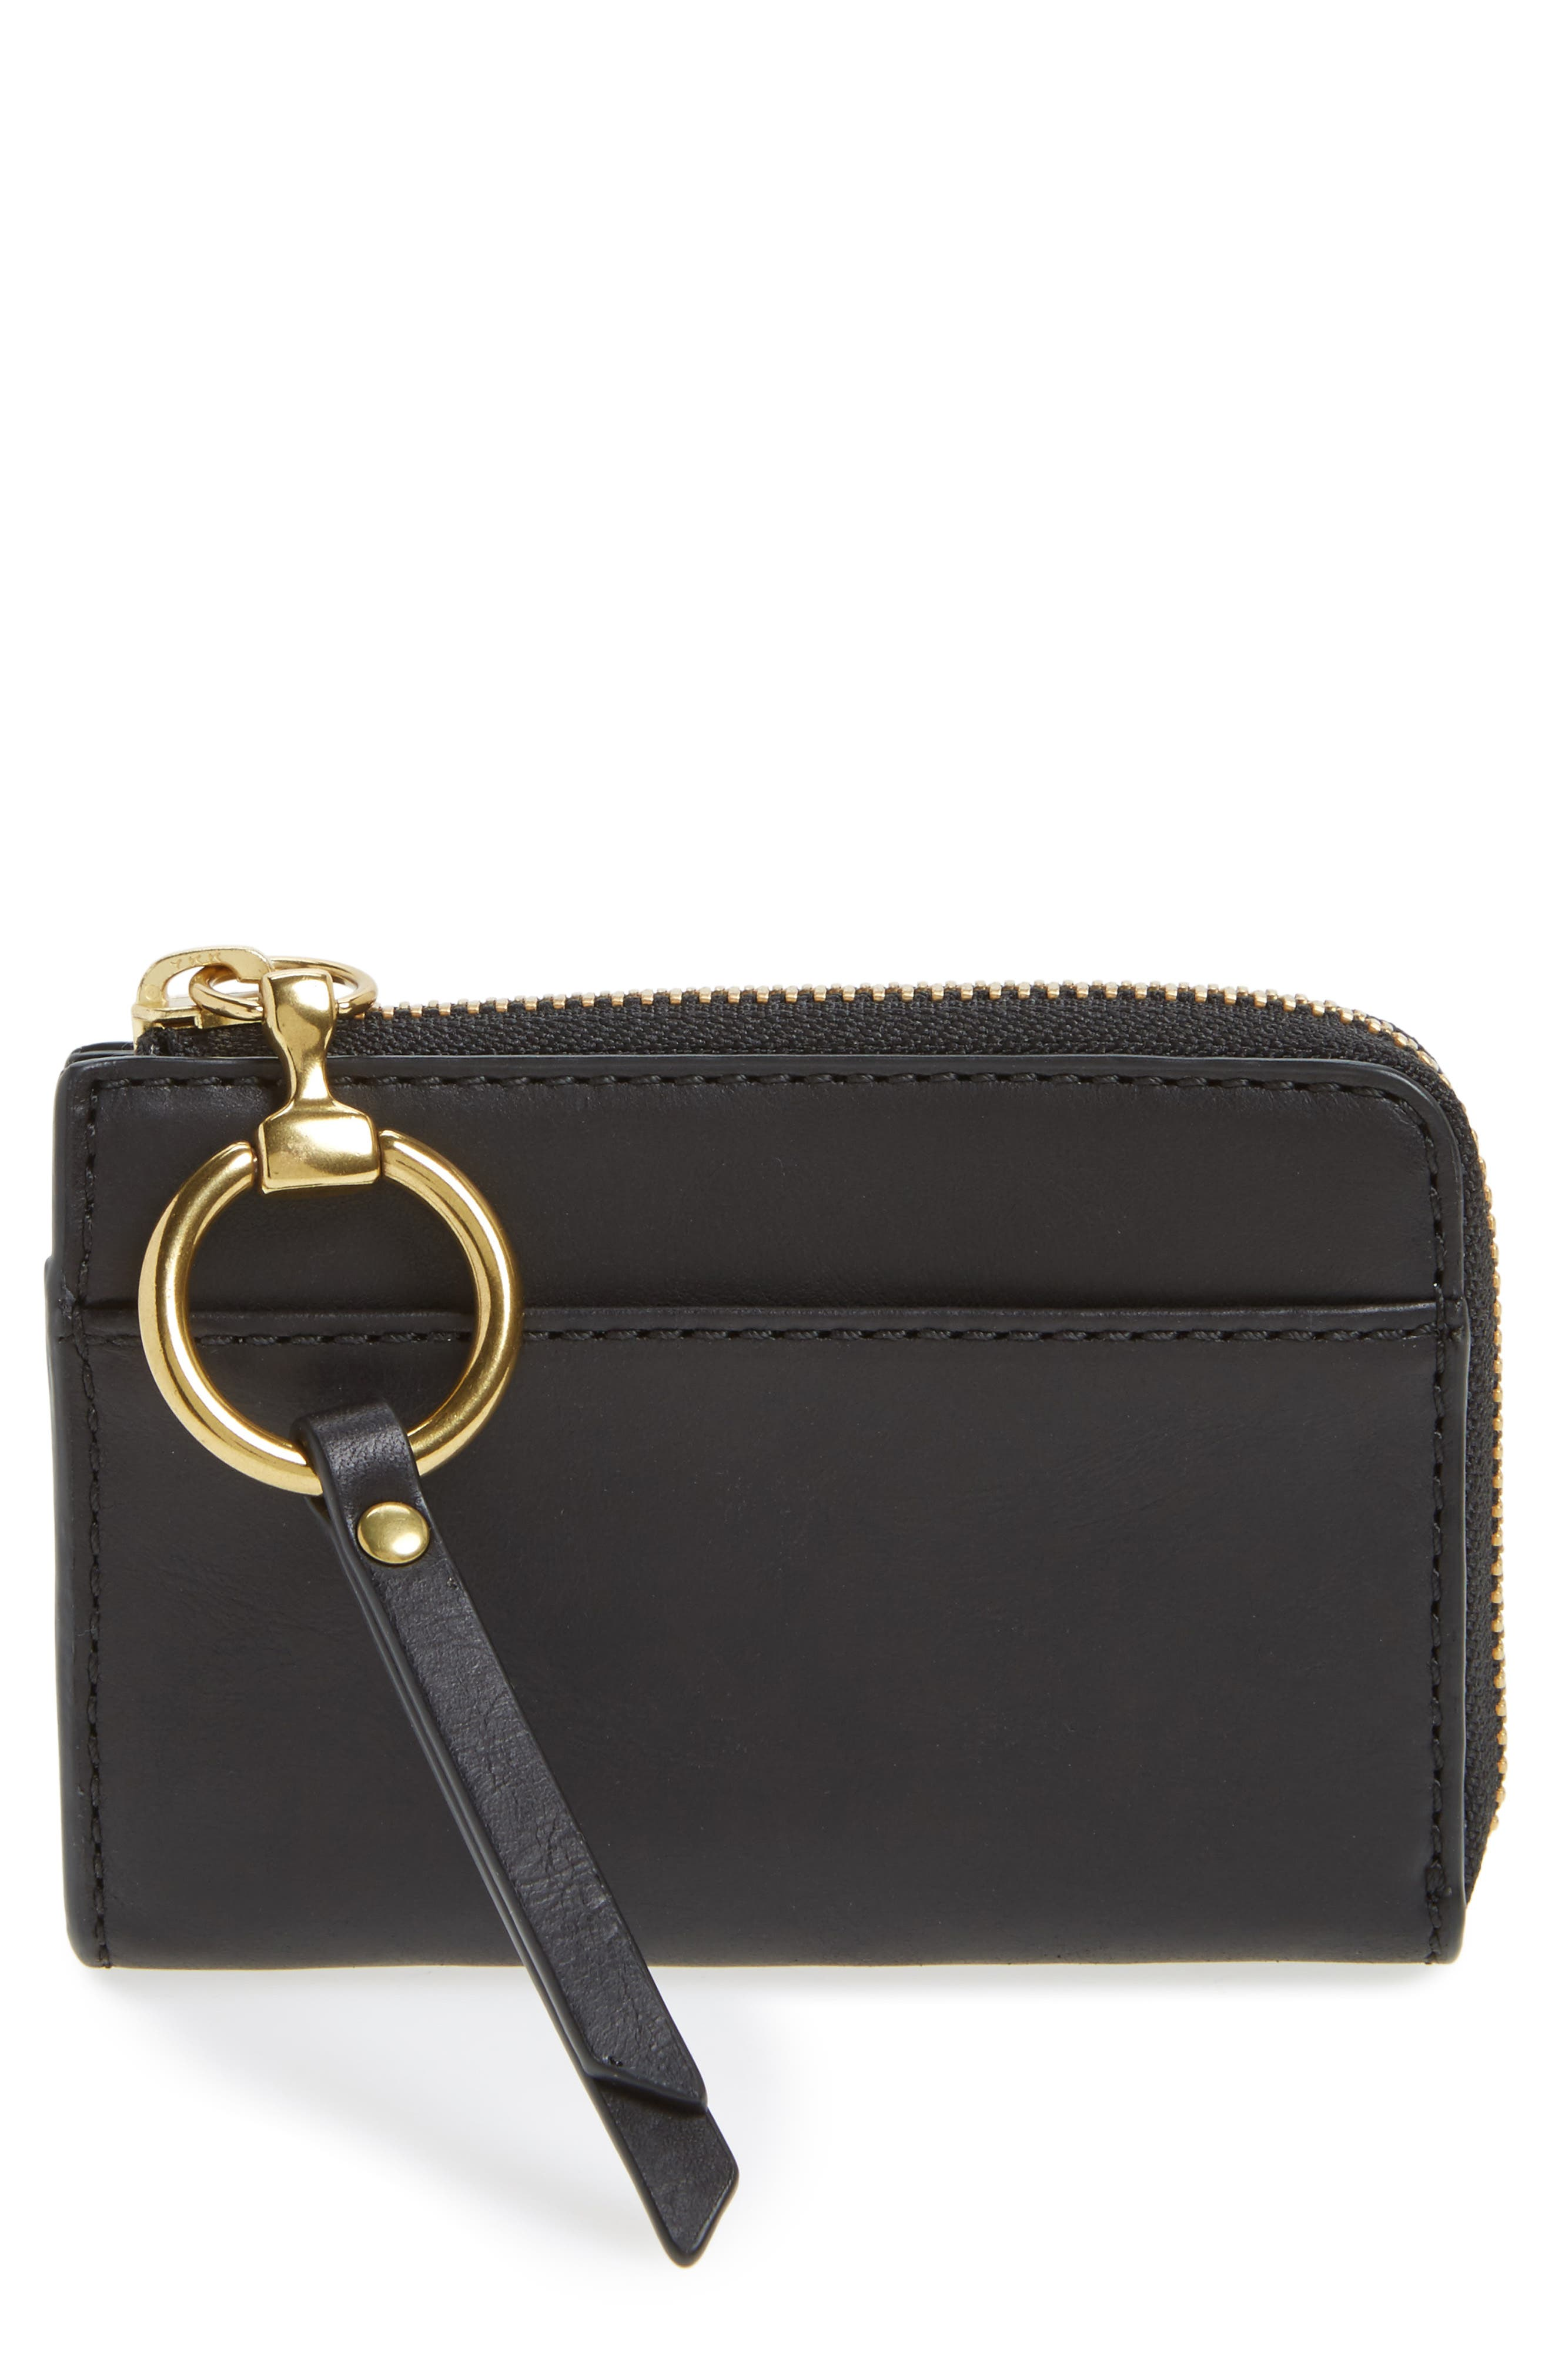 Alternate Image 1 Selected - Frye Small Ilana Harness Zip Leather Wallet